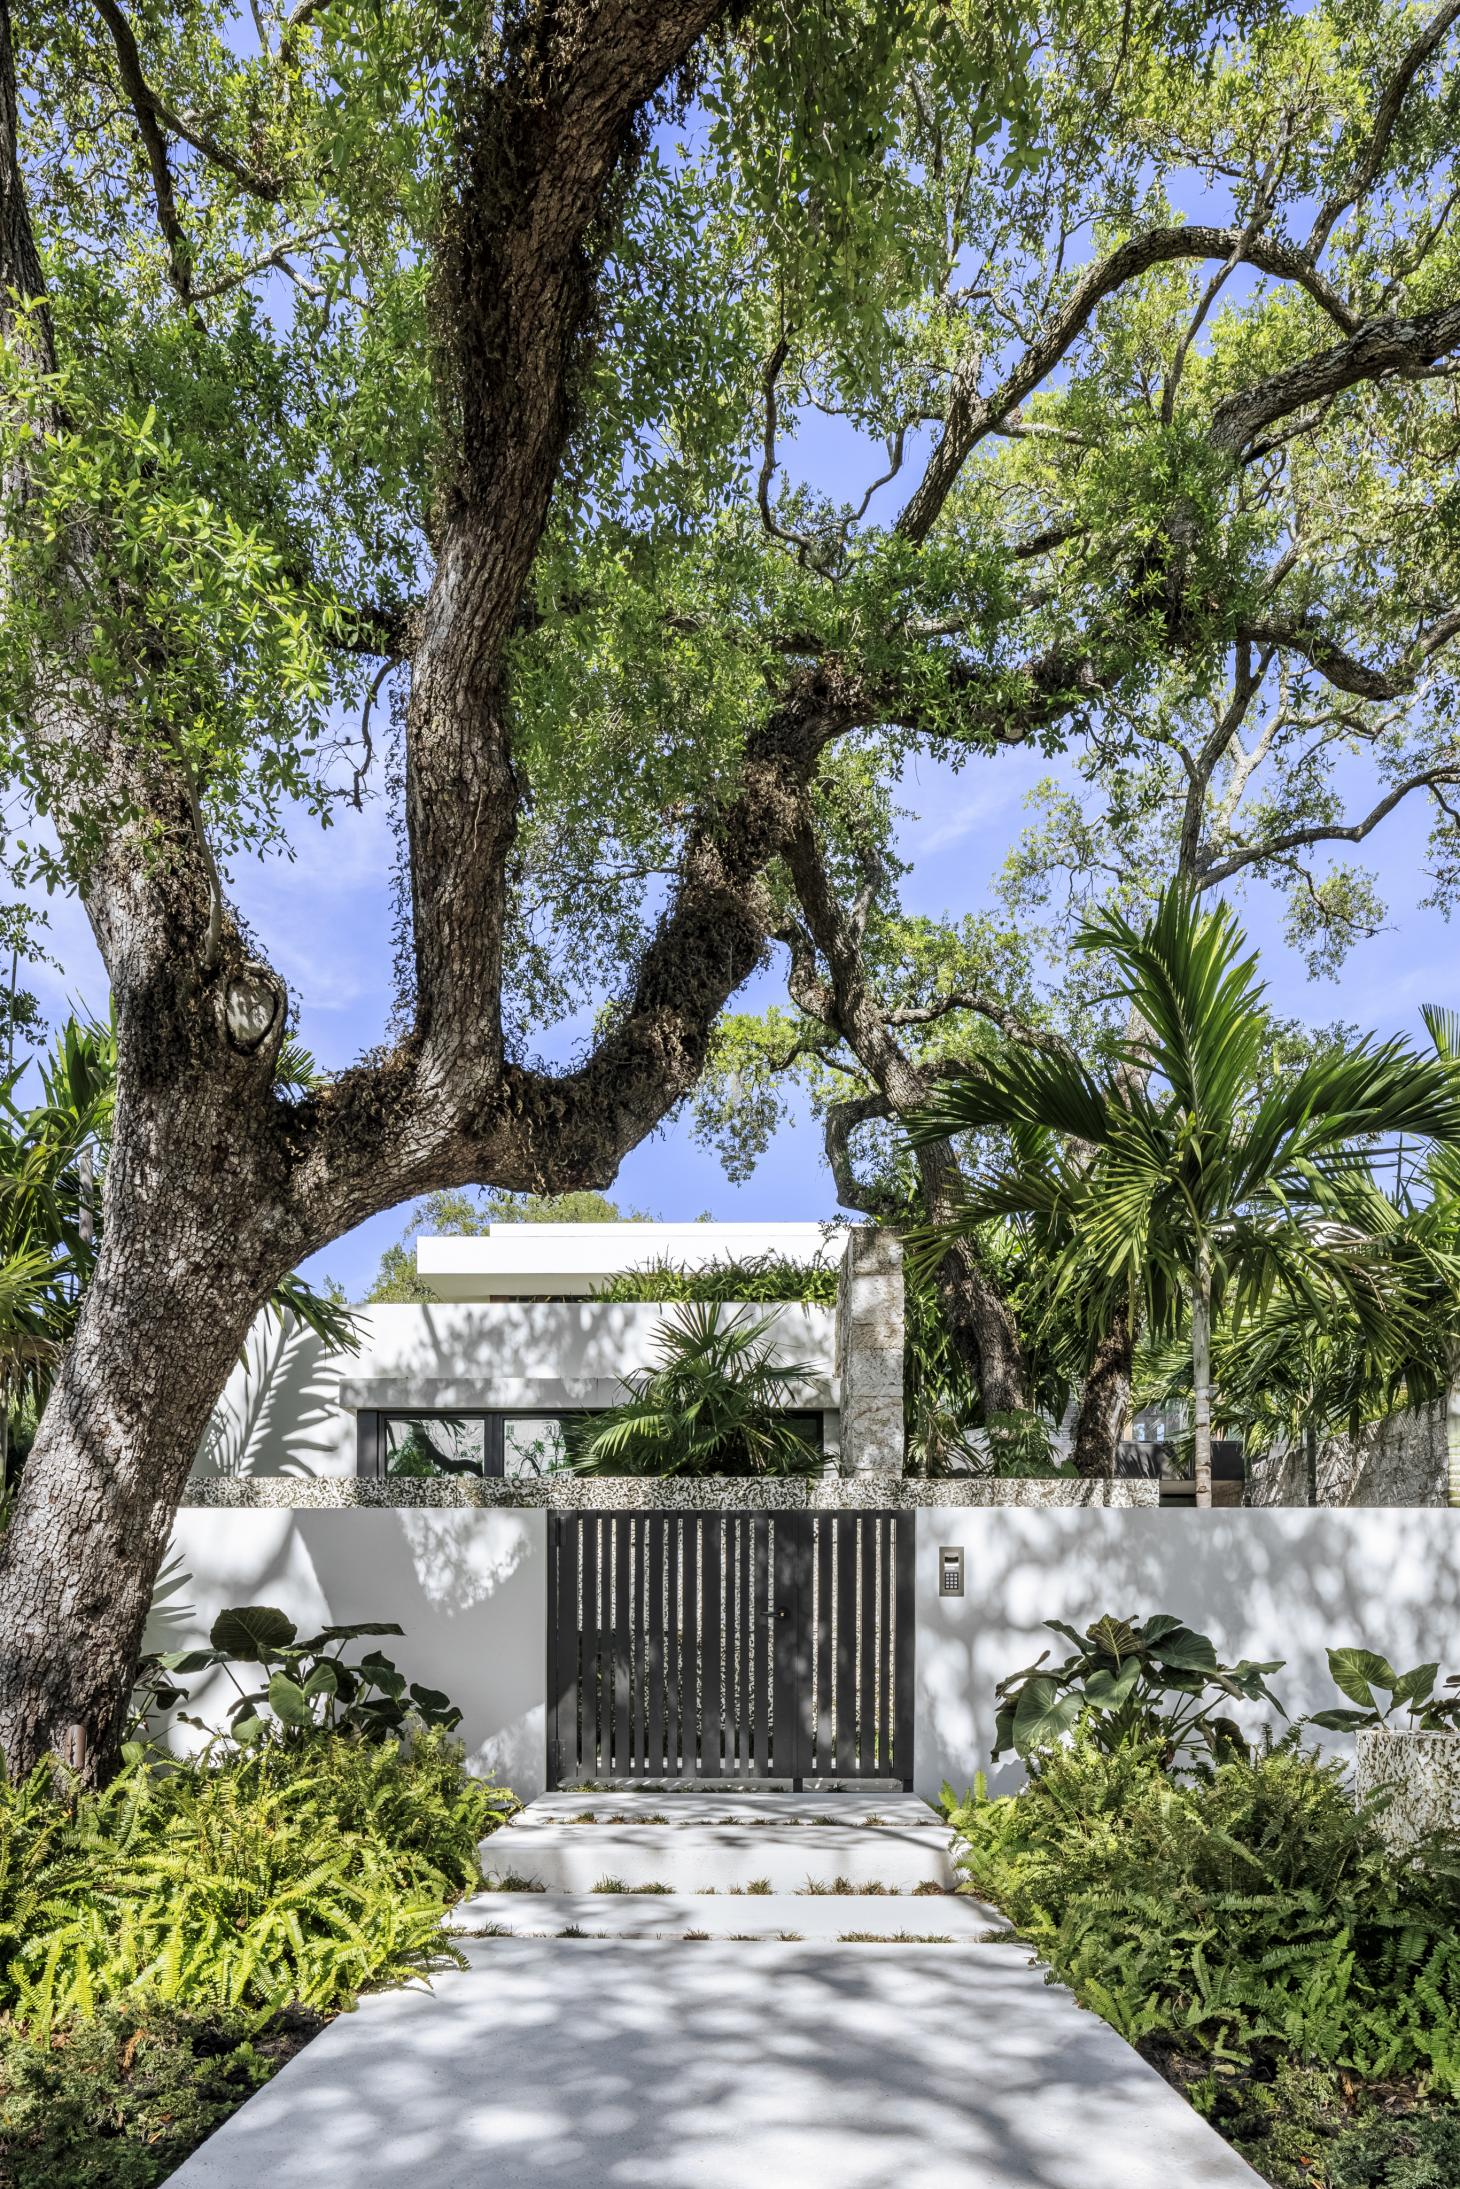 main entrance surrounded by foliage at the Tarpon Bend Residence